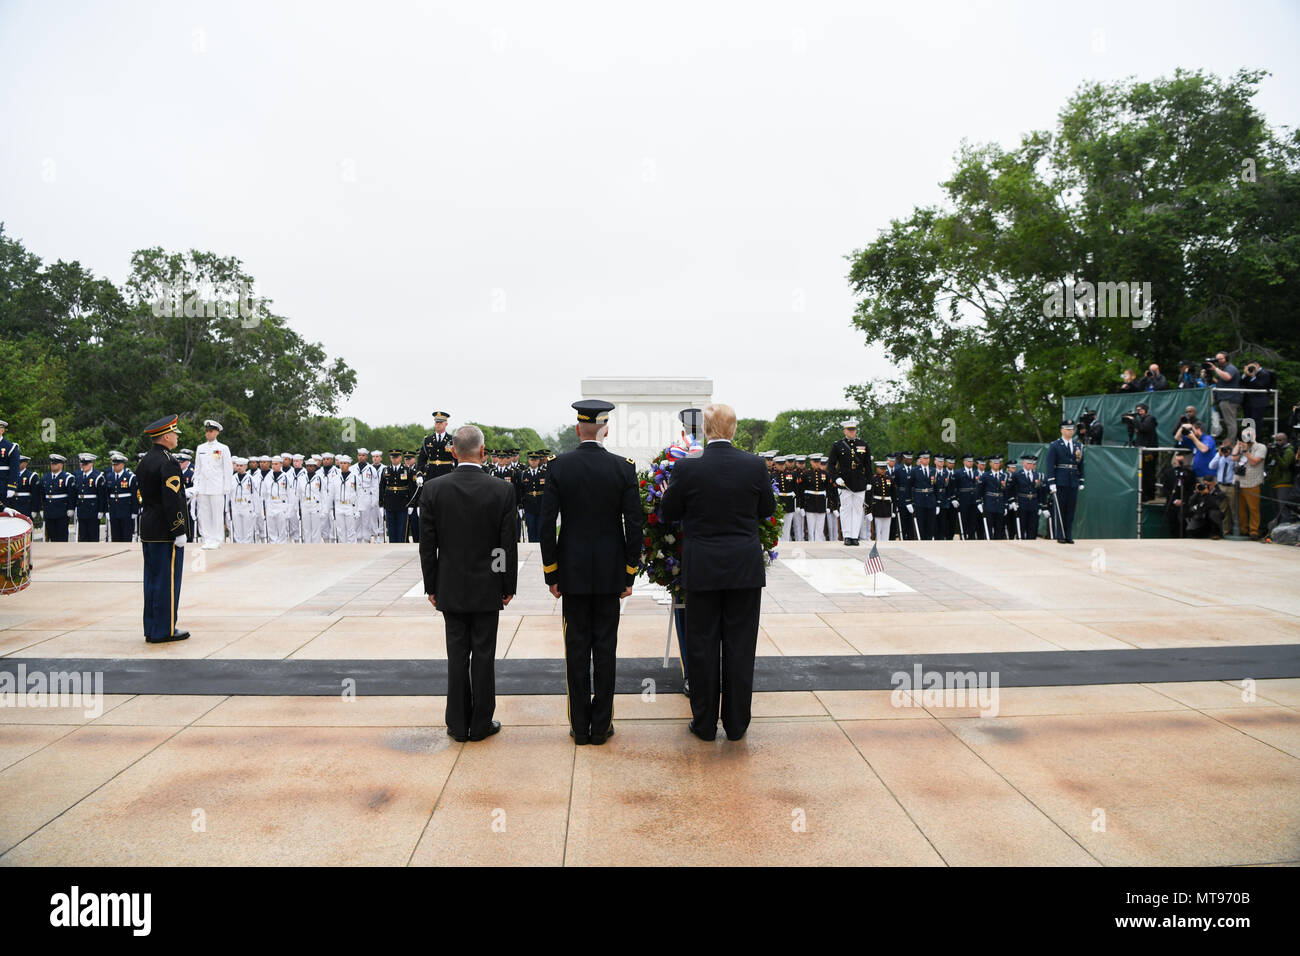 U.S President Donald Trump, right, Army Maj. Gen. Michael Howard, center, and Secretary of Defense James Mattis stand in silence during a wreath ceremony at the Tomb of the Unknown Soldiers during the 150th annual National Memorial Day Observance at Arlington National Cemetery May 28, 2018 in Arlington, Virginia. - Stock Image